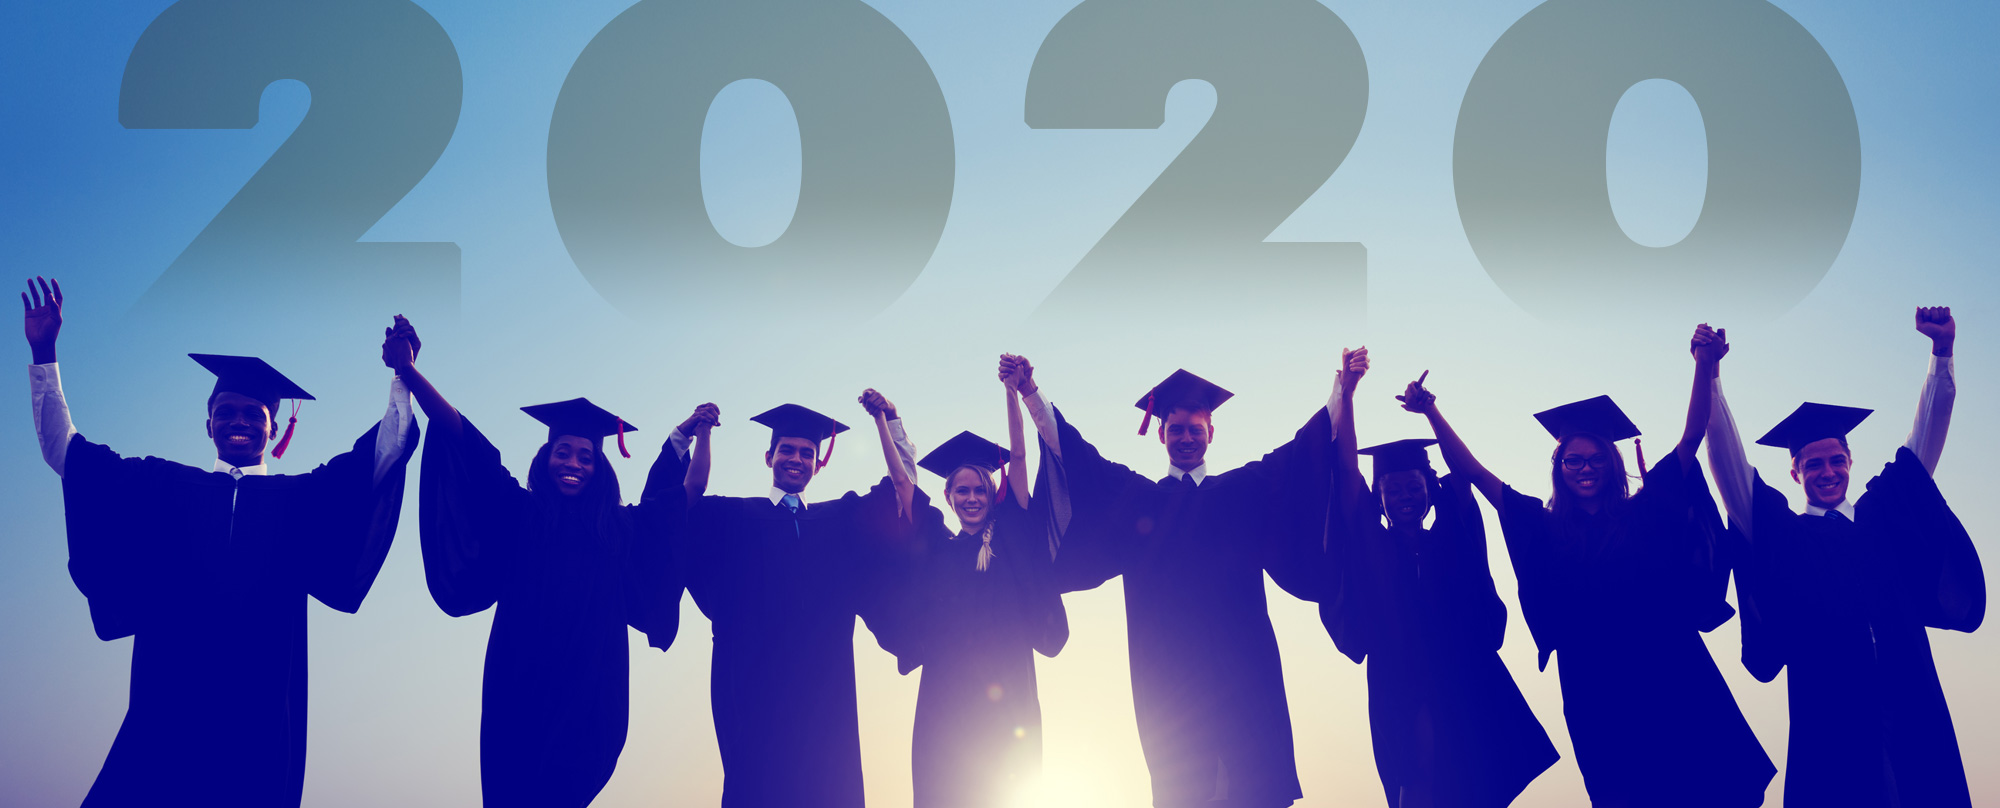 Graduation 2020: Tradition in the Midst of Change – NLM Musings ...